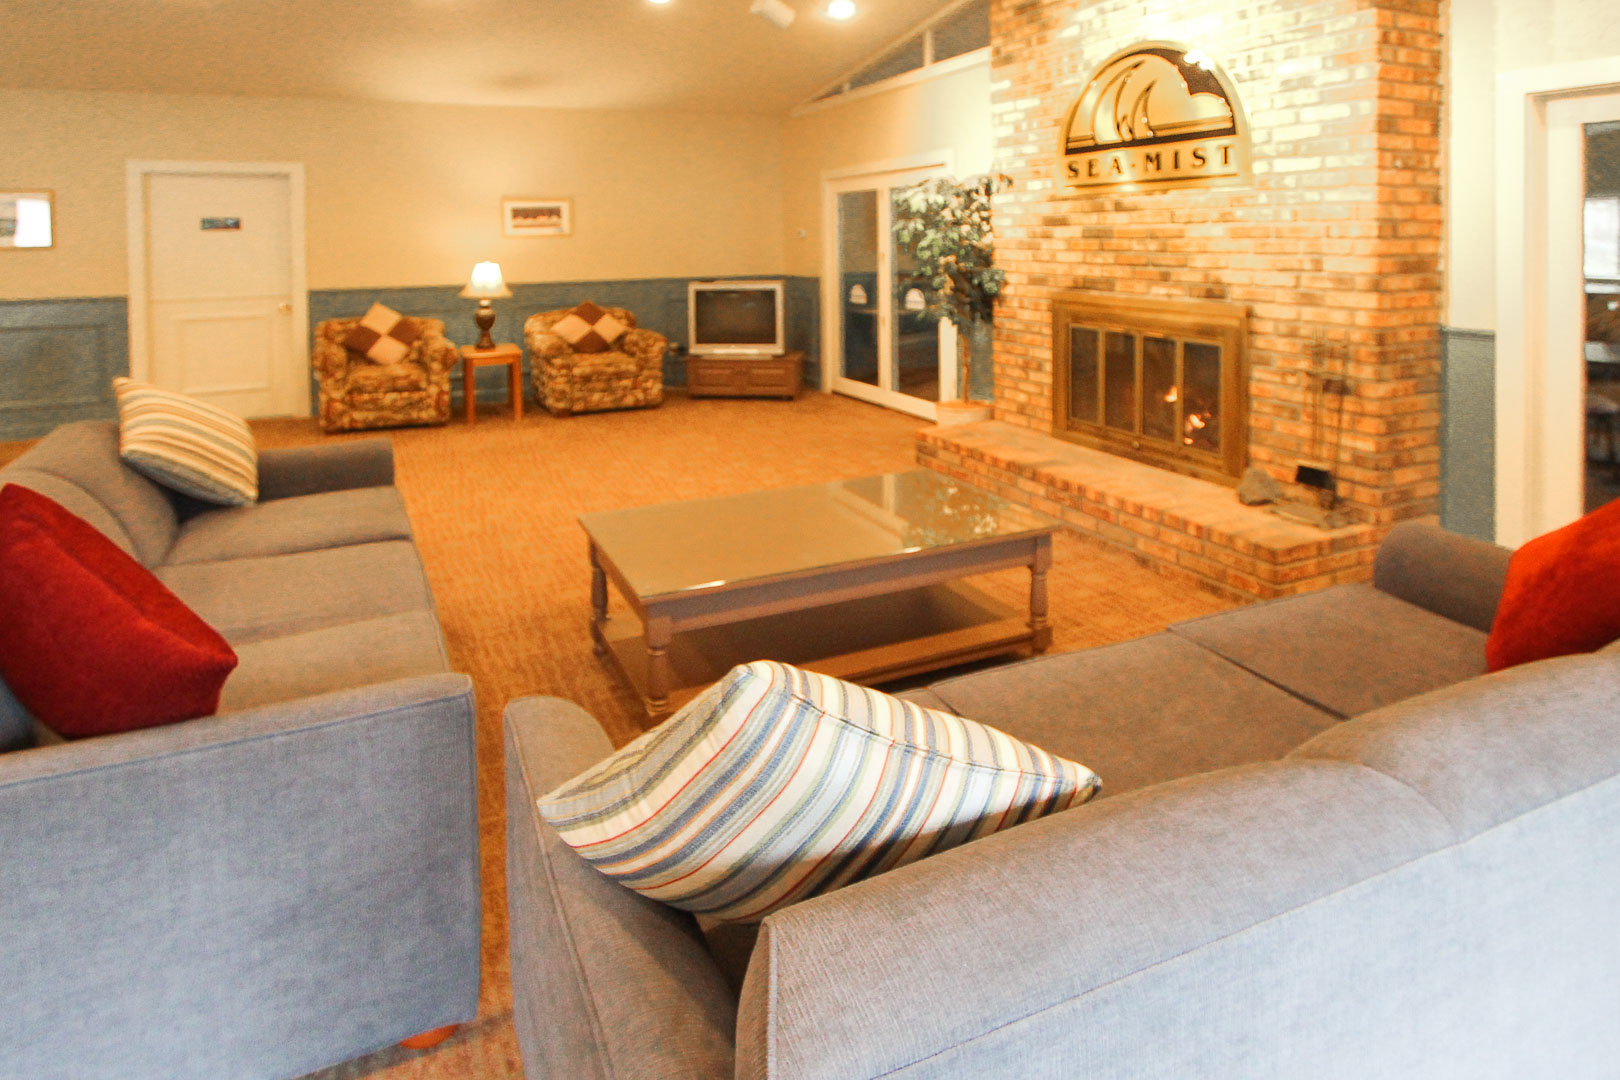 A welcoming lobby area at VRI's Sea Mist Resort in Massachusetts.